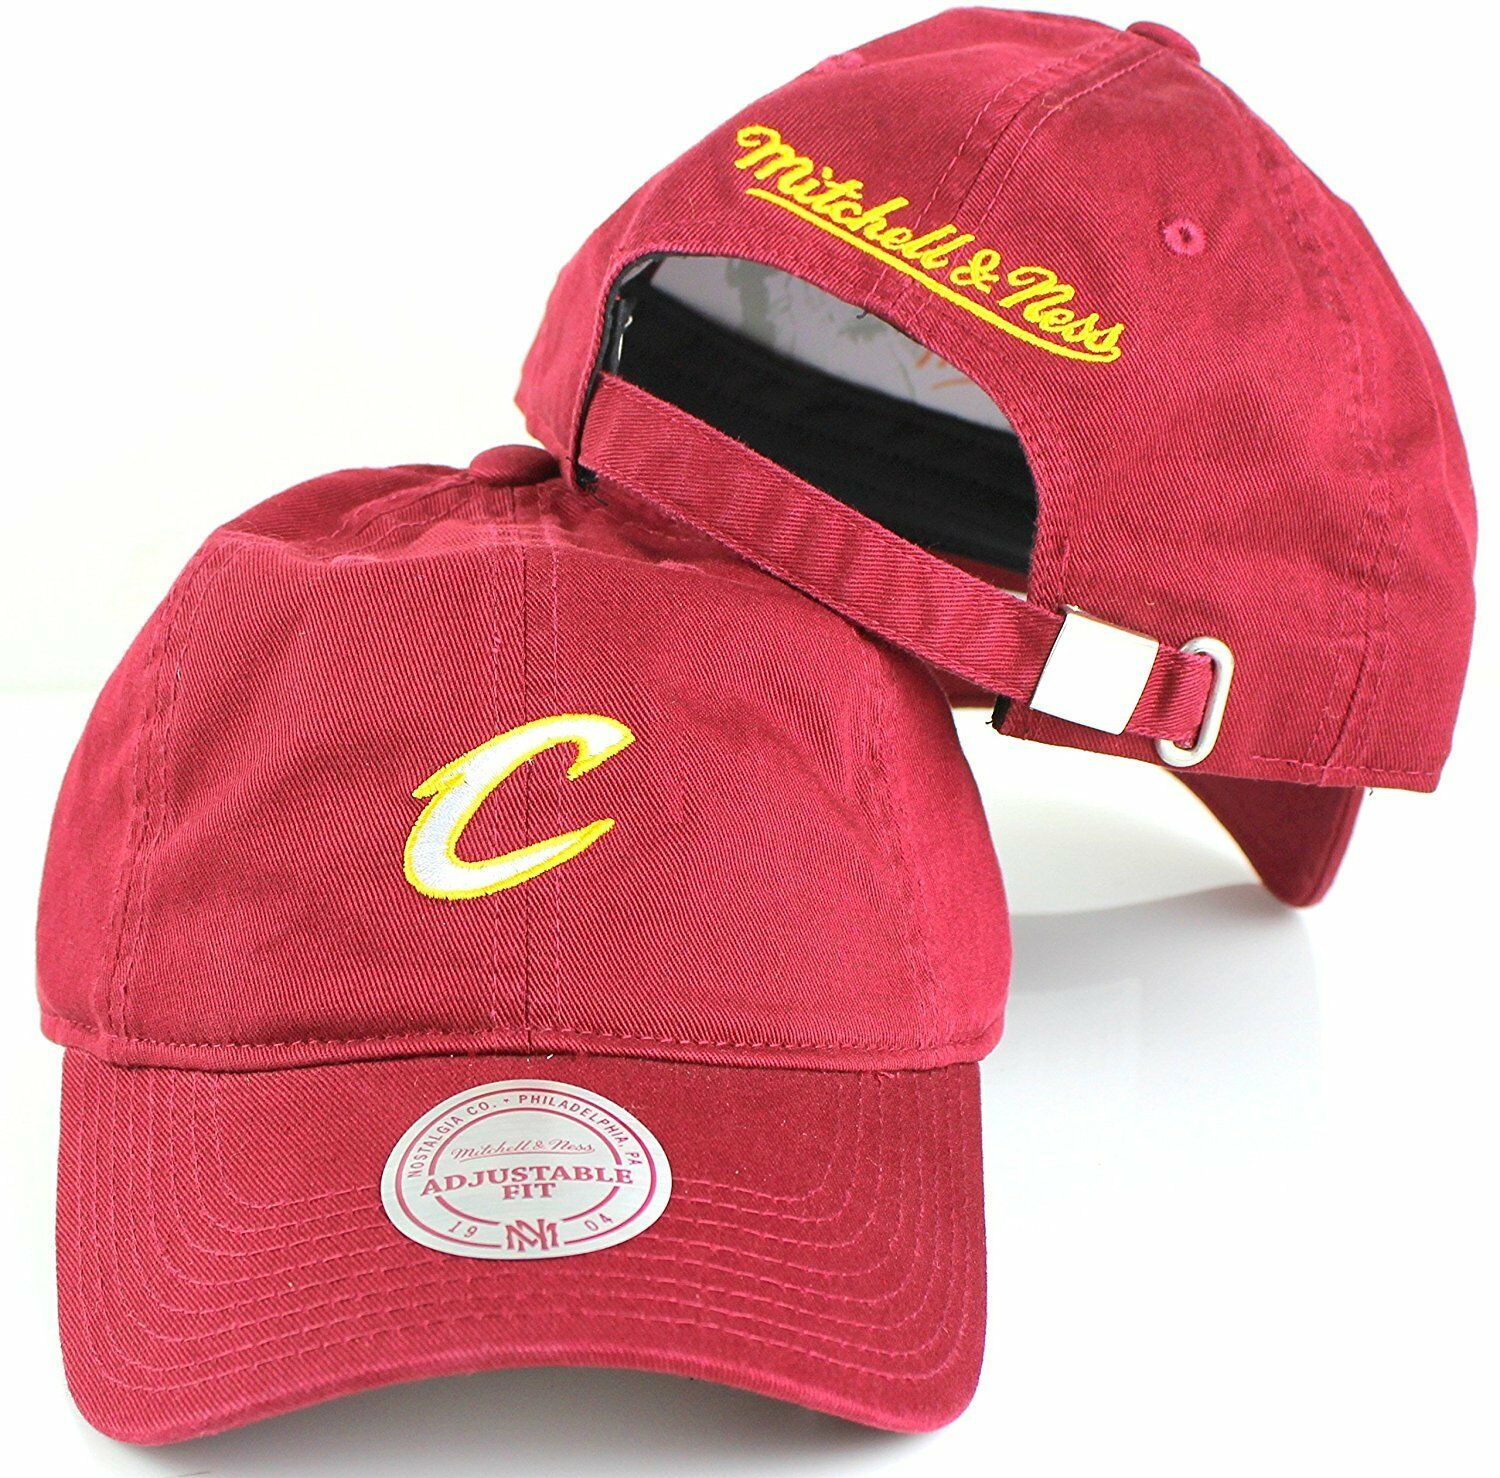 53c0742e196 Cleveland Cavaliers NBA Mitchell   Ness Cotton Adjustable Backstrap ...